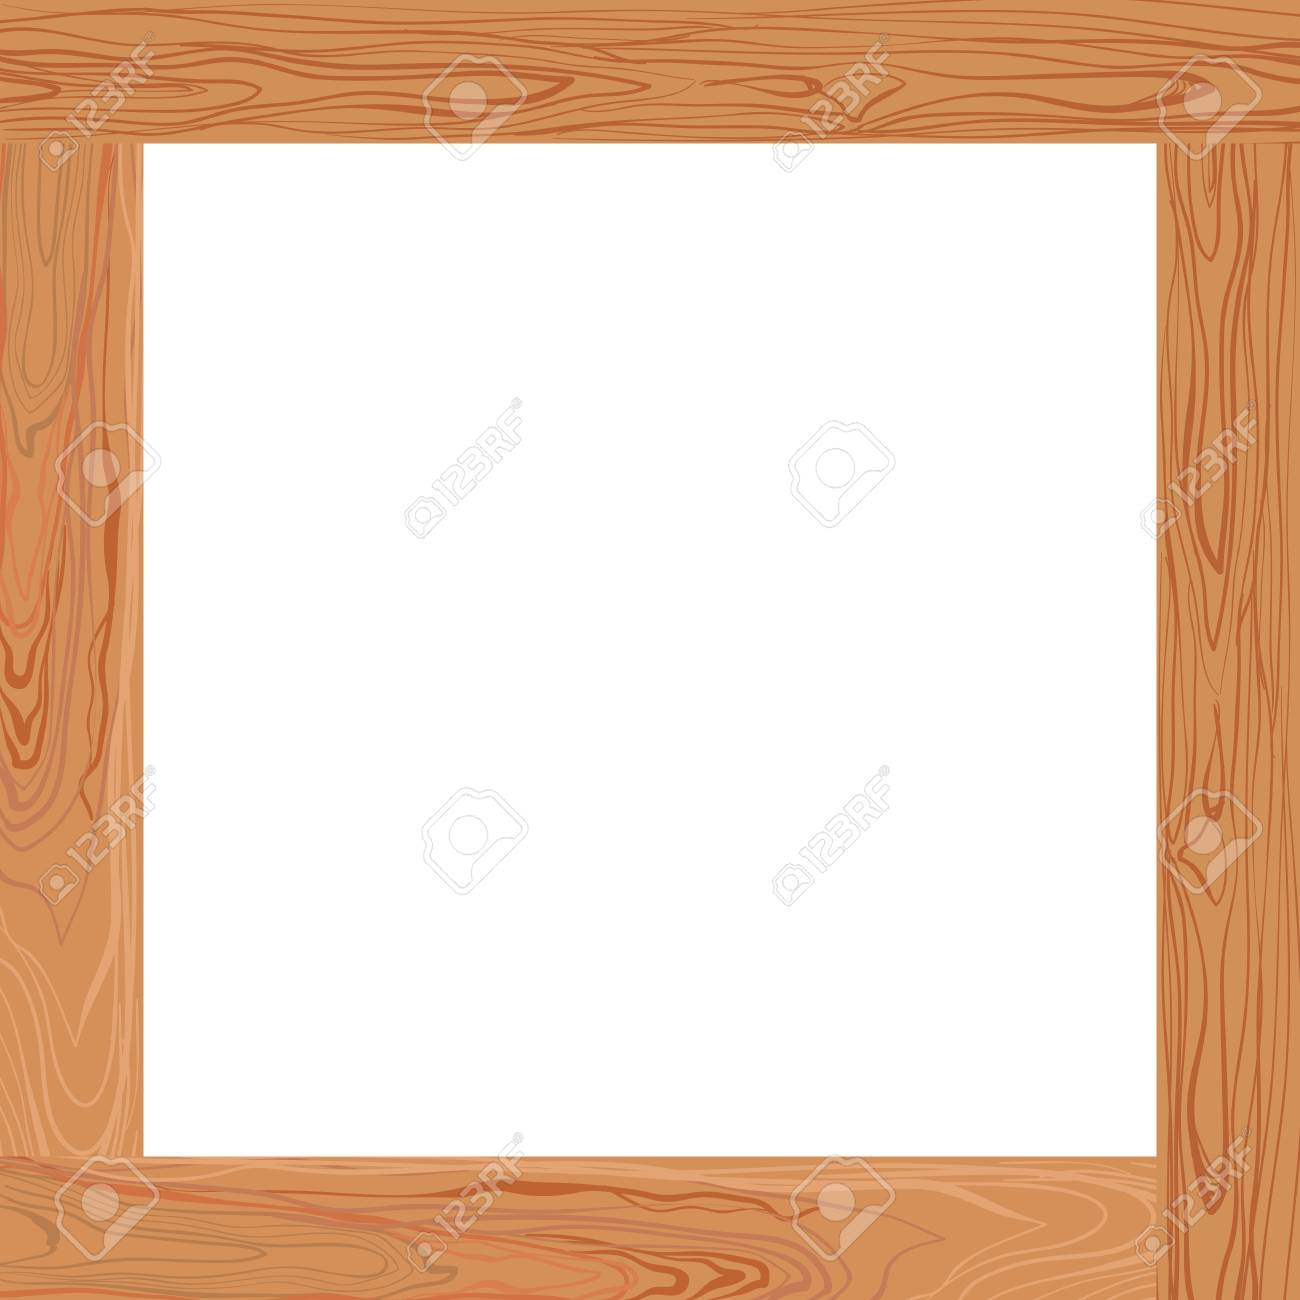 Vector Light Brown Wooden Frame Blank Border Template Royalty Free